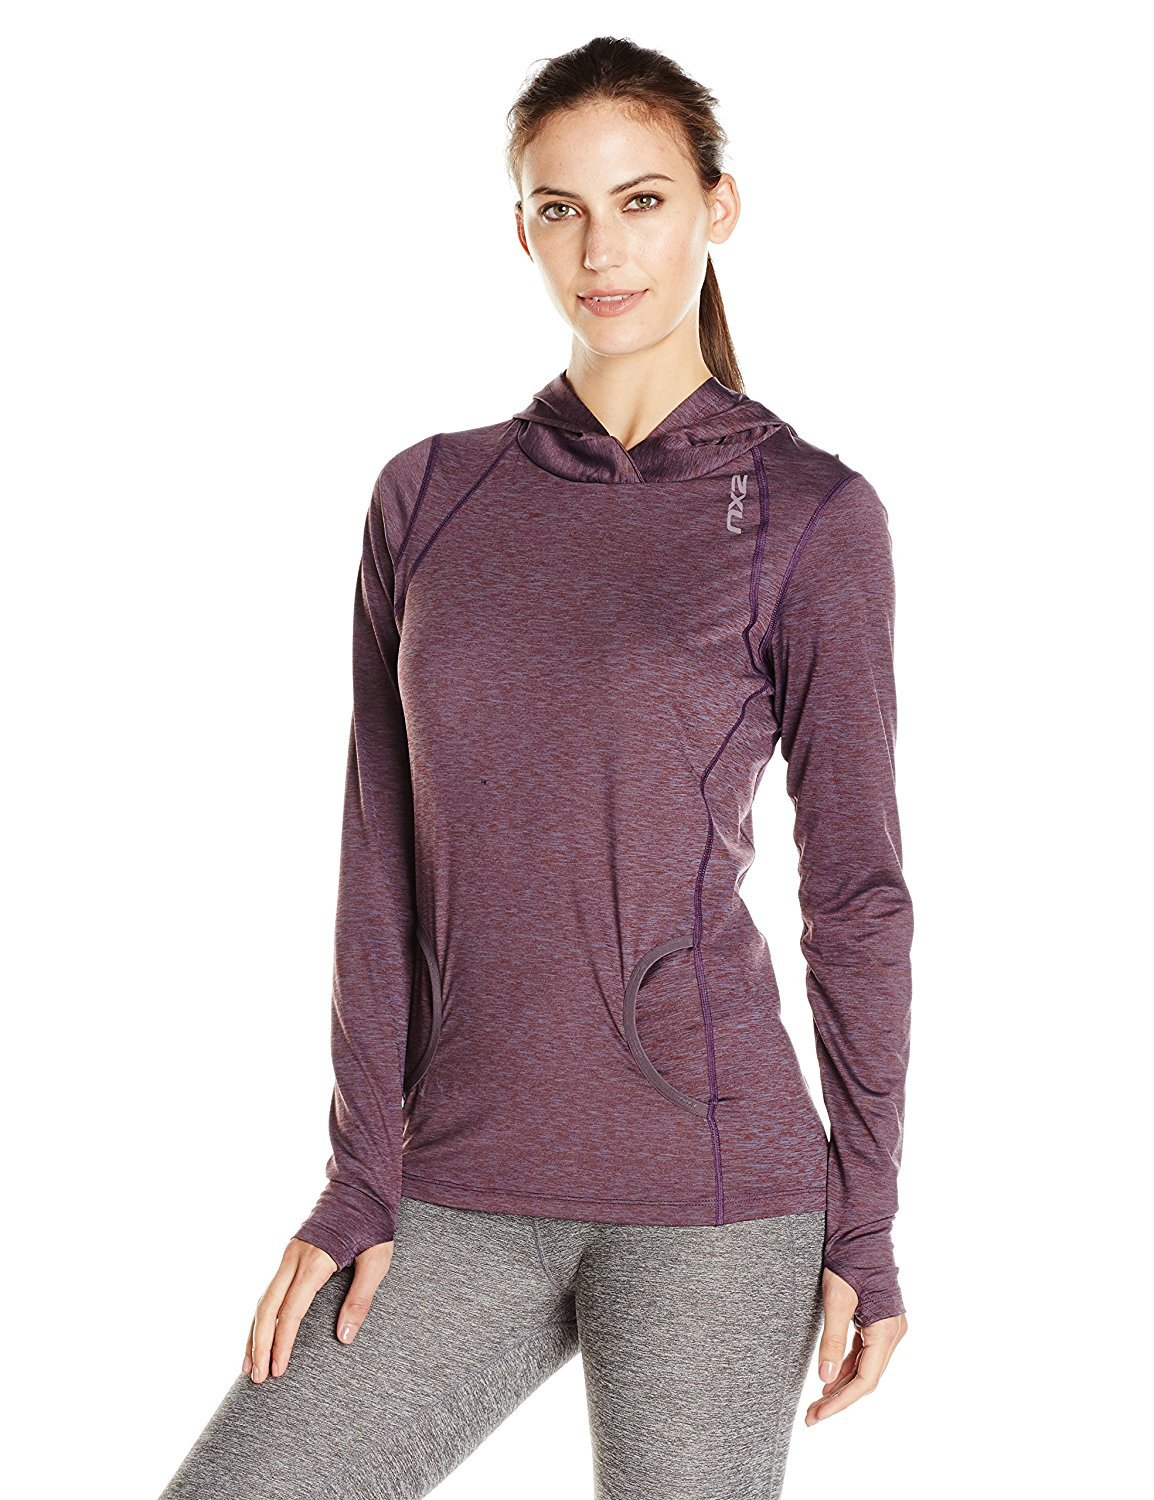 $80 NWOT 2XU Women's Movement Pullover hoodie Small purple